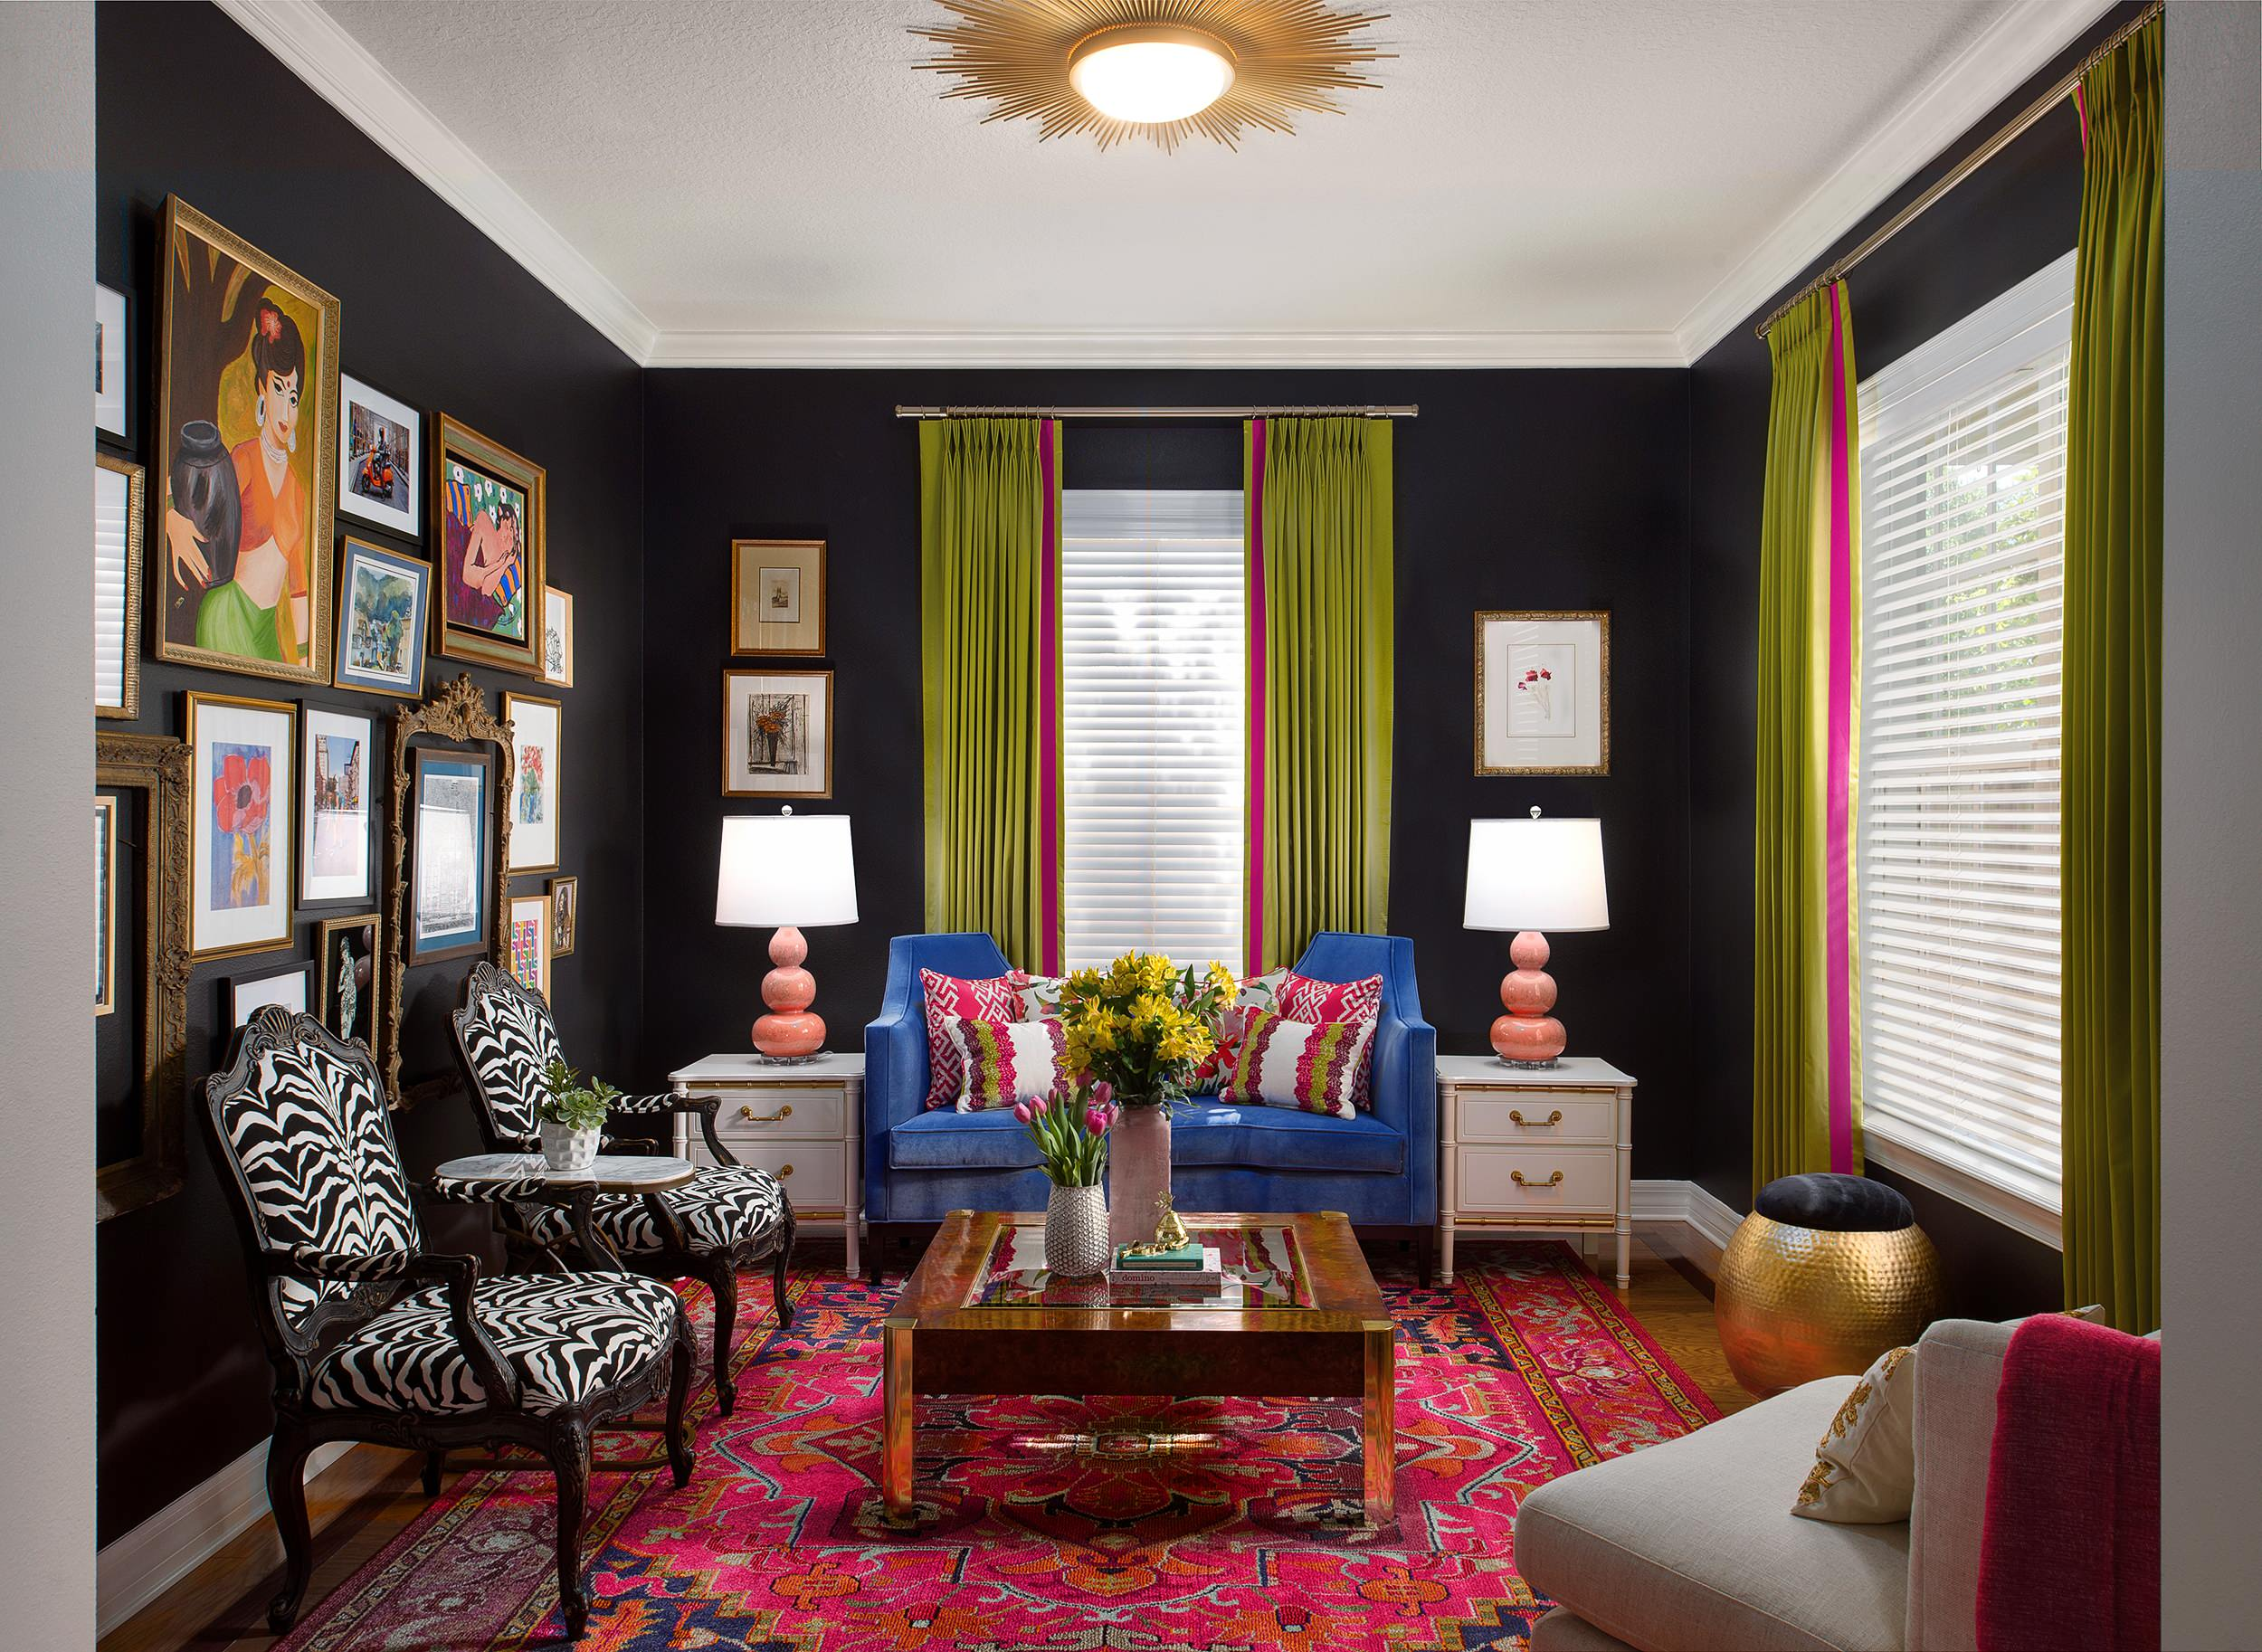 17 Comfy Eclectic Living Room Designs That Are All About The